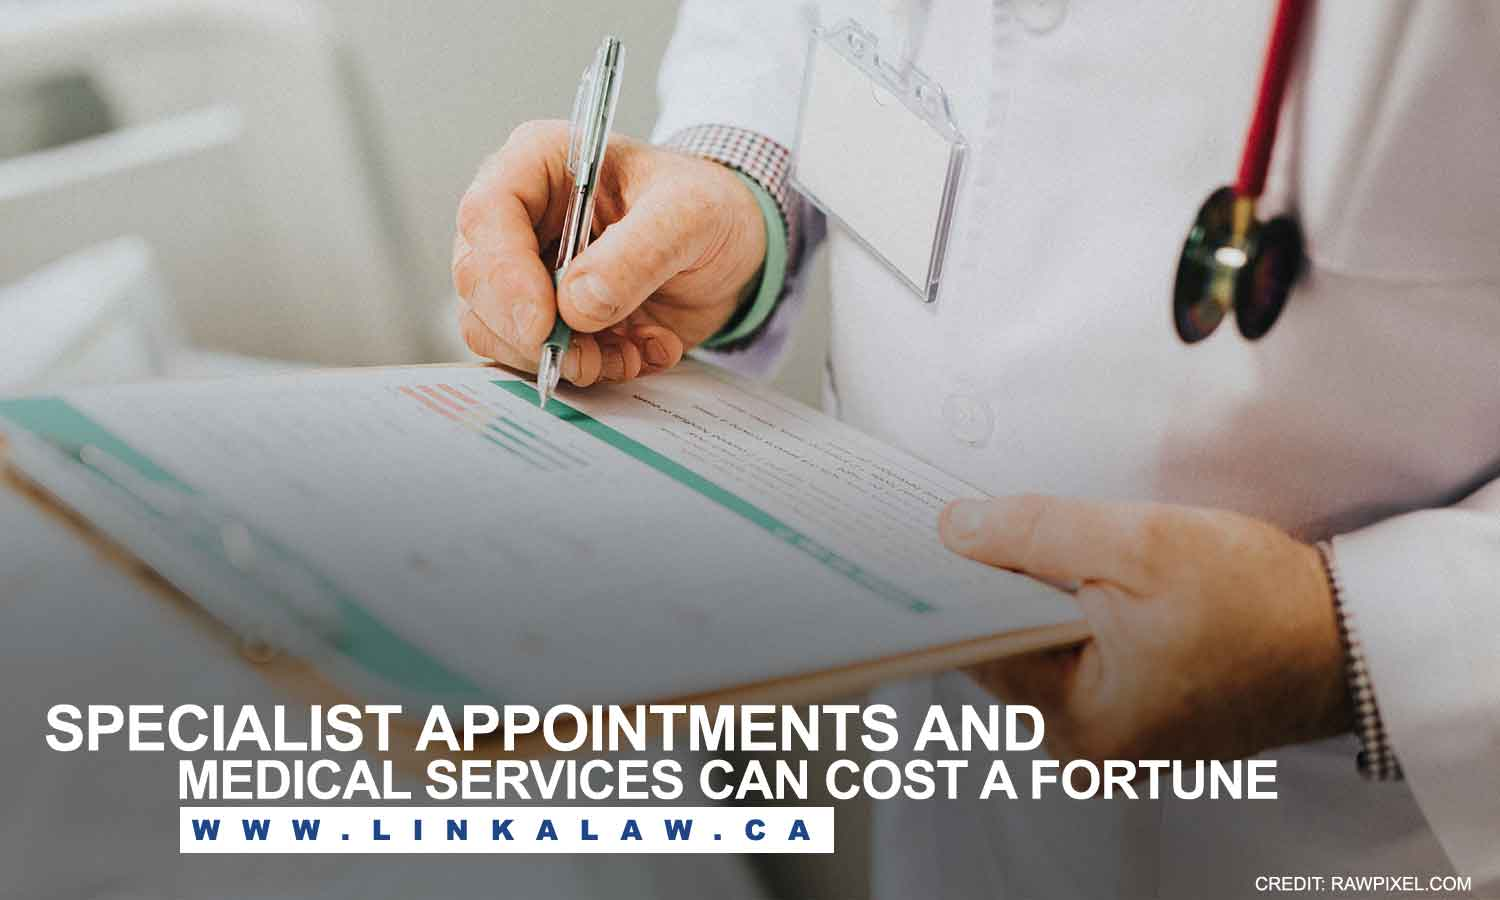 Specialist appointments and medical services can cost a fortune